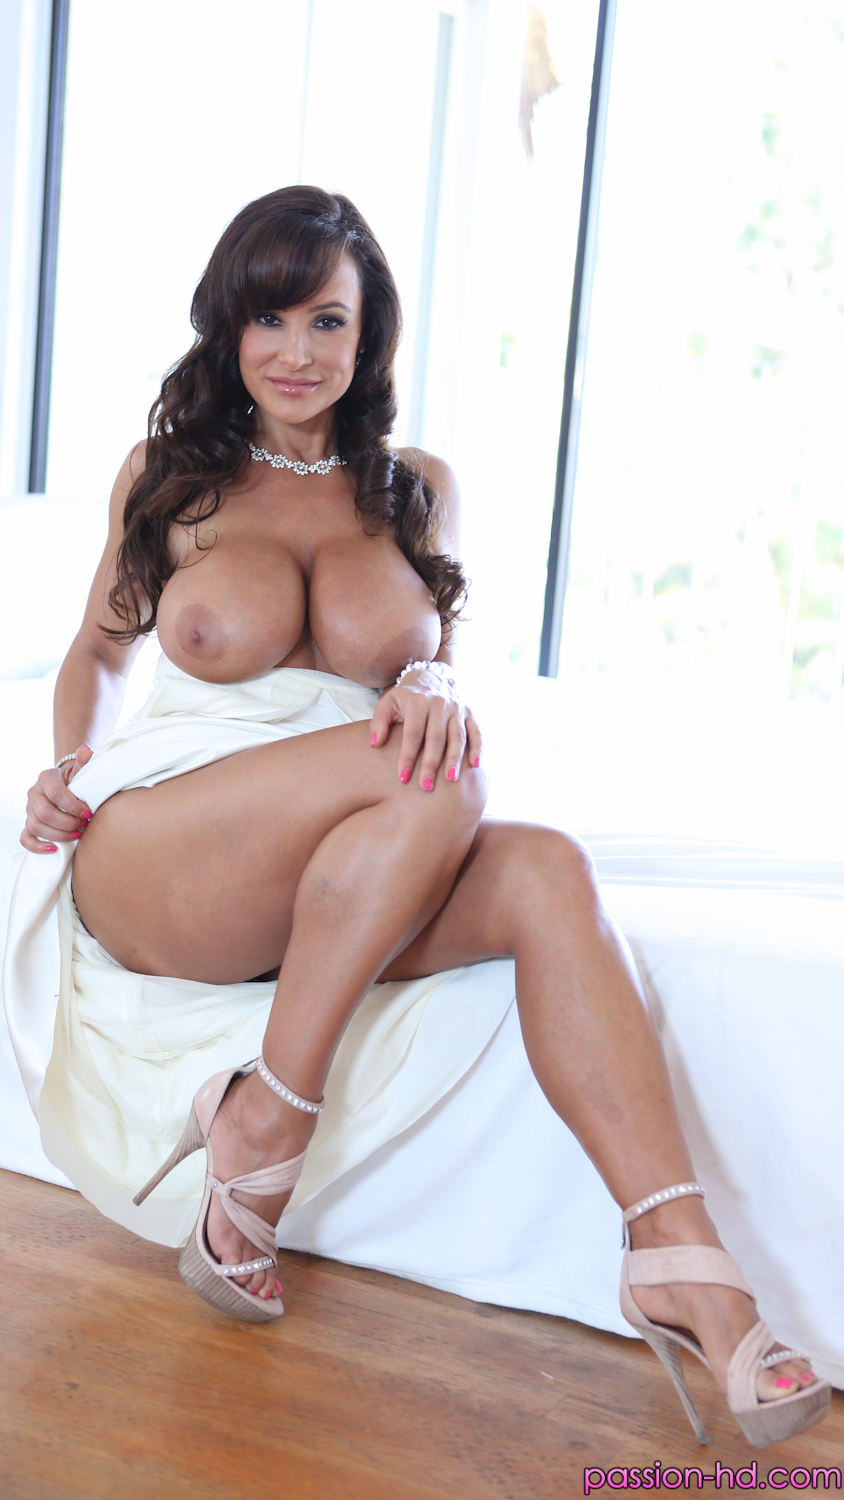 Lisa ann free hd